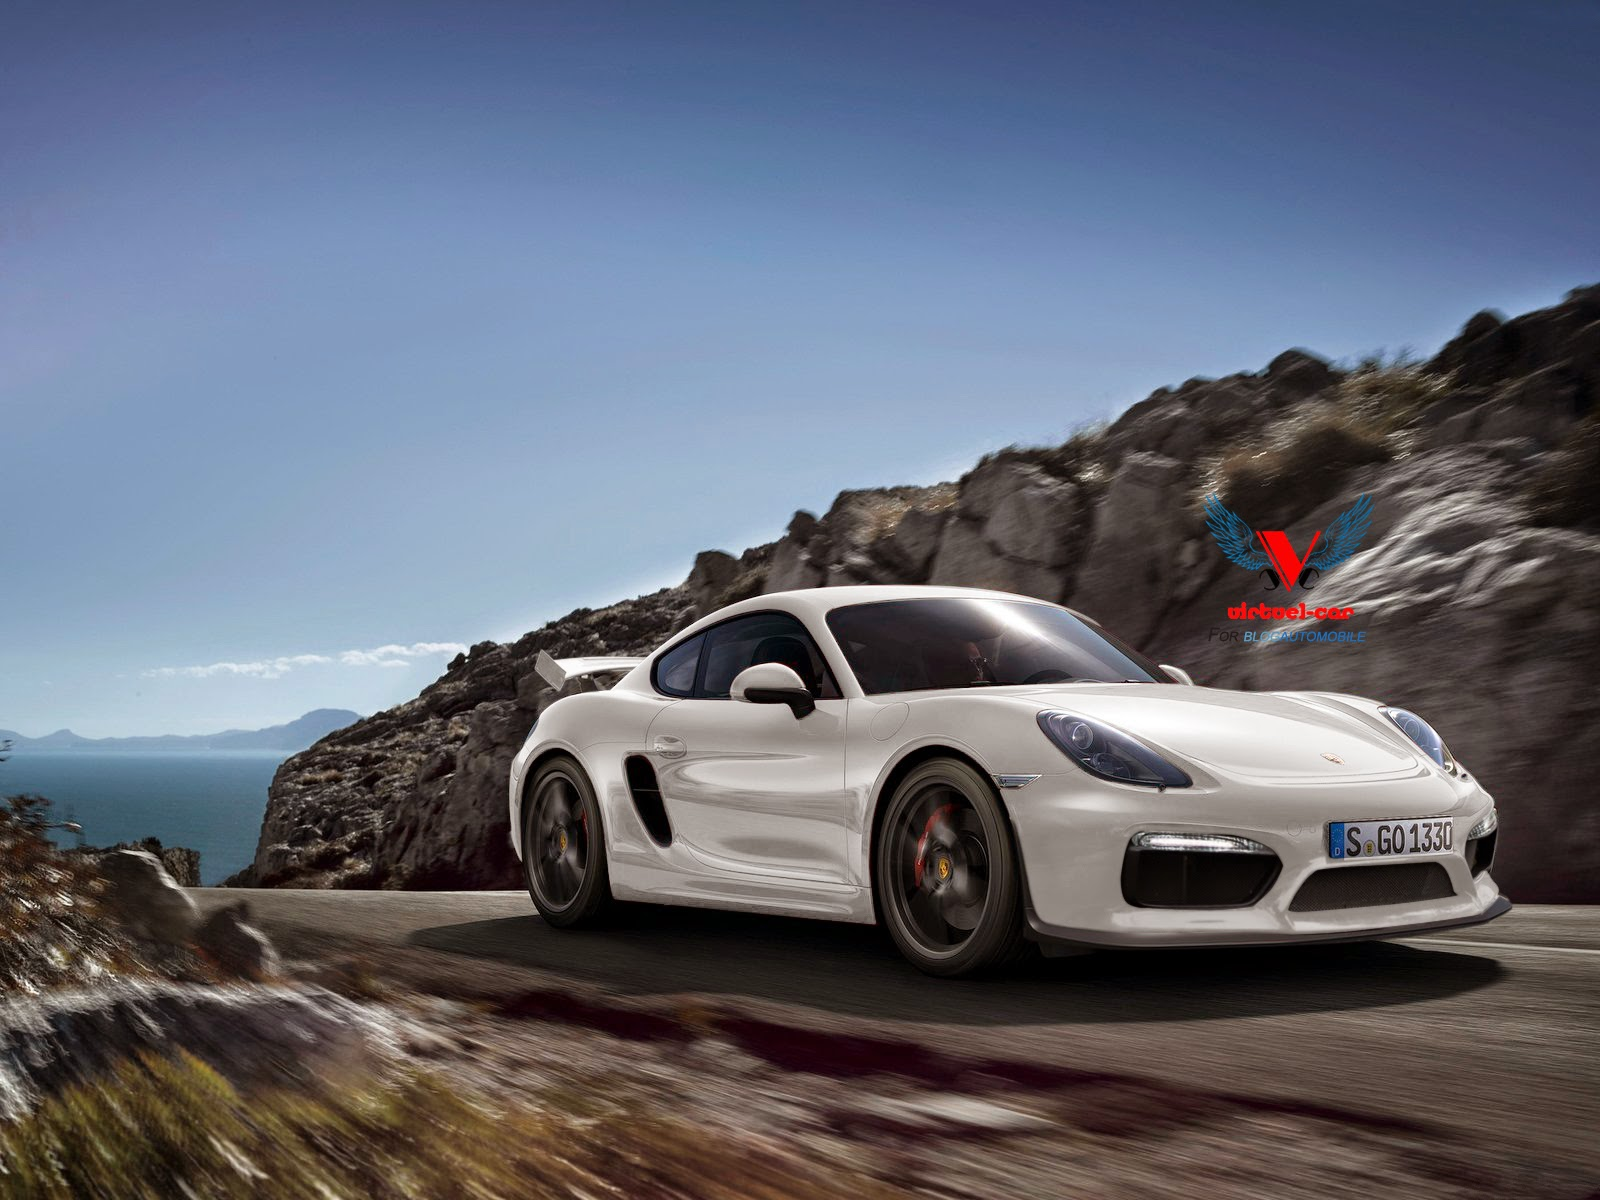 2015 Porsche Cayman Gt4 Rendered More Power And A Big Wing 83979on Porsche 4 Cylinder Boxer Engine